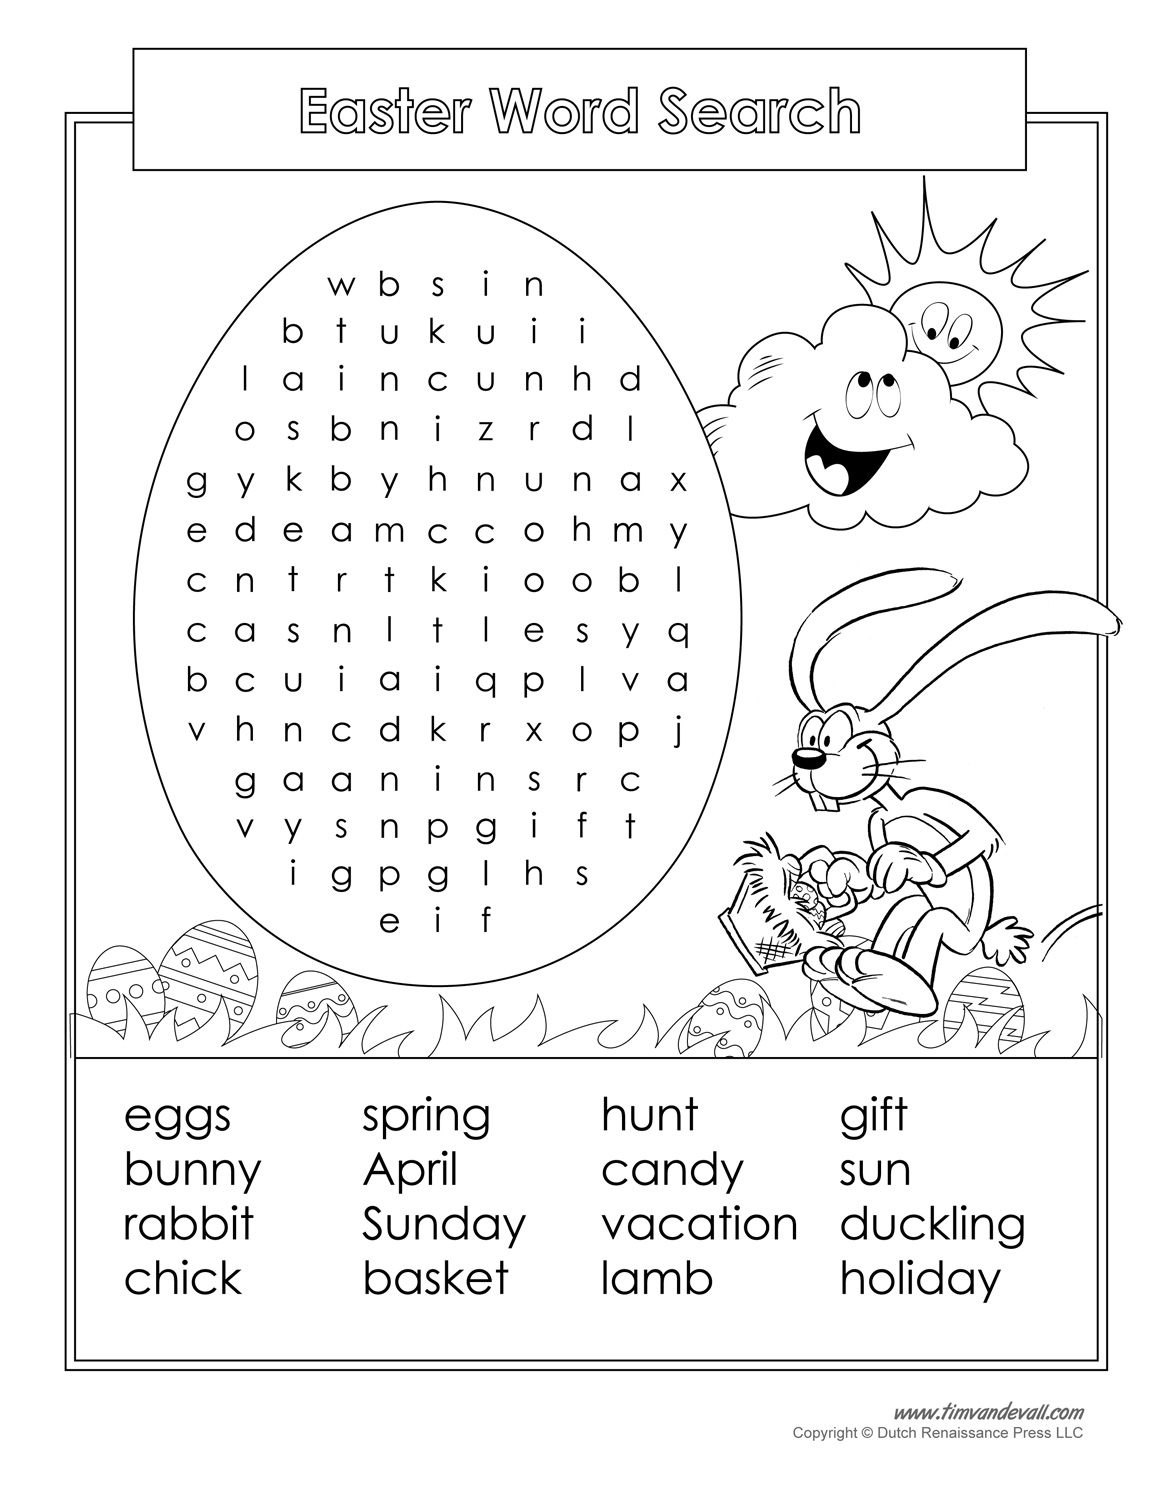 16 Printable Easter Word Search Puzzles